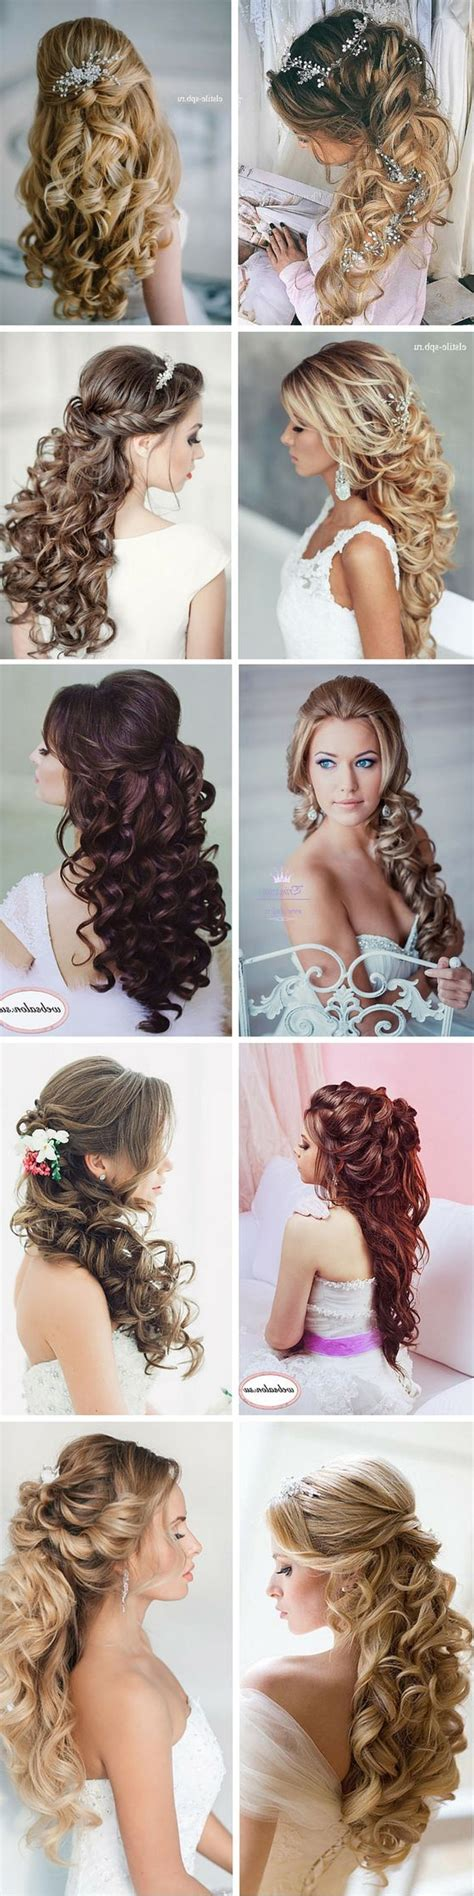 Wedding Hairstyles Curly Hair Half Up by 100 Wedding Hairstyles 2018 Curls Half